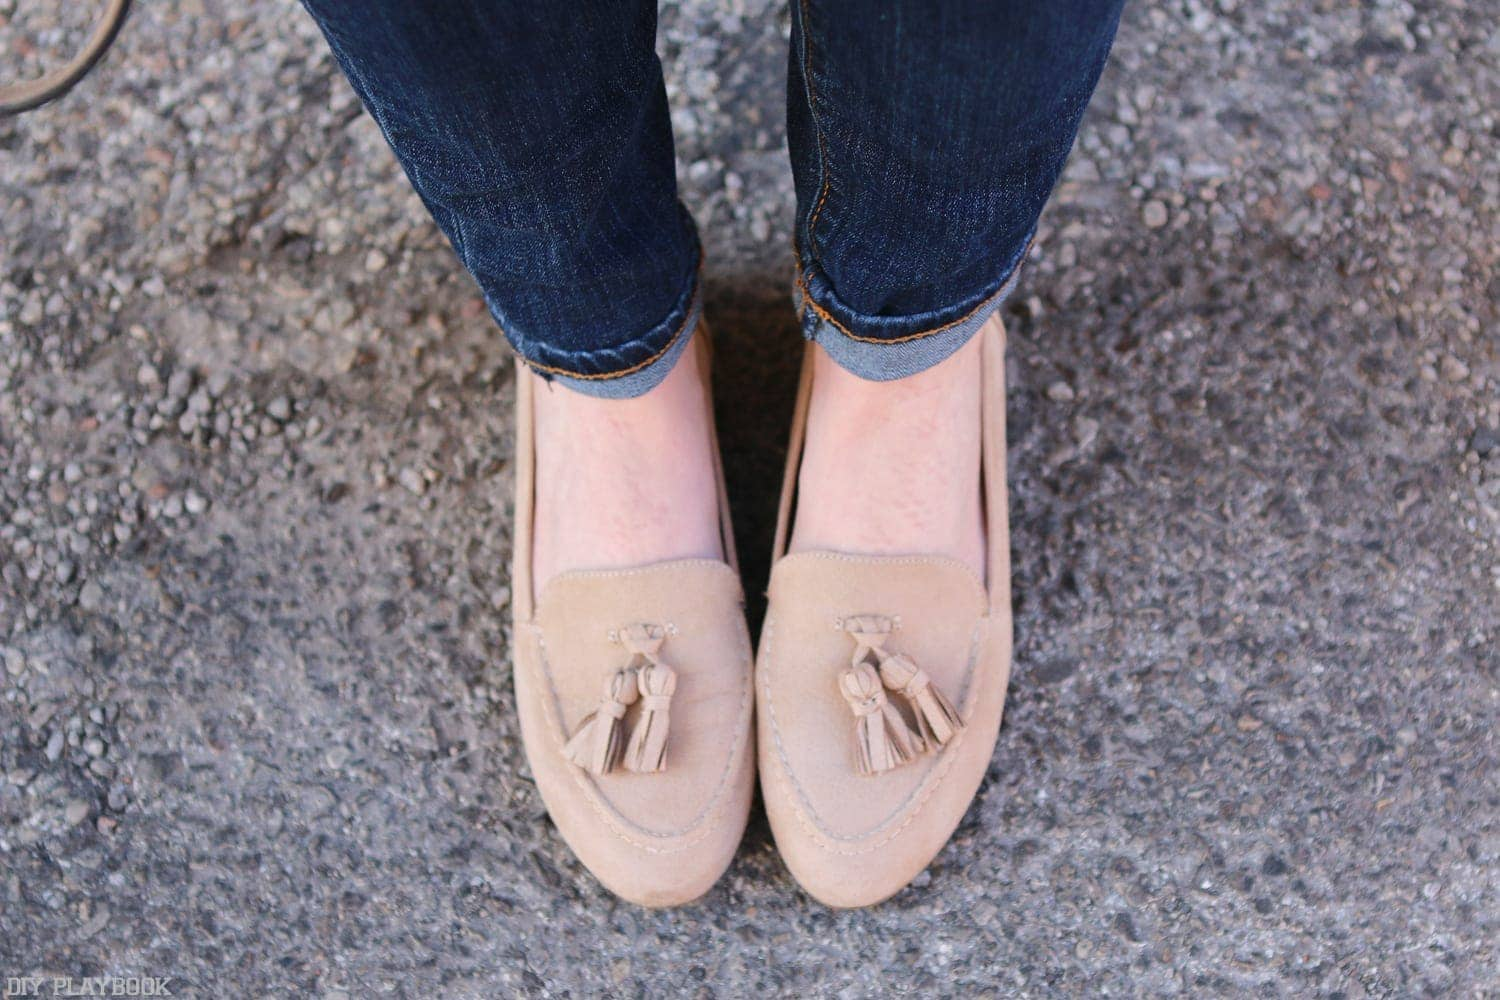 Comfy shoes like these adorable flats are a must for Bridget in her long day of teaching and walking from class to class!